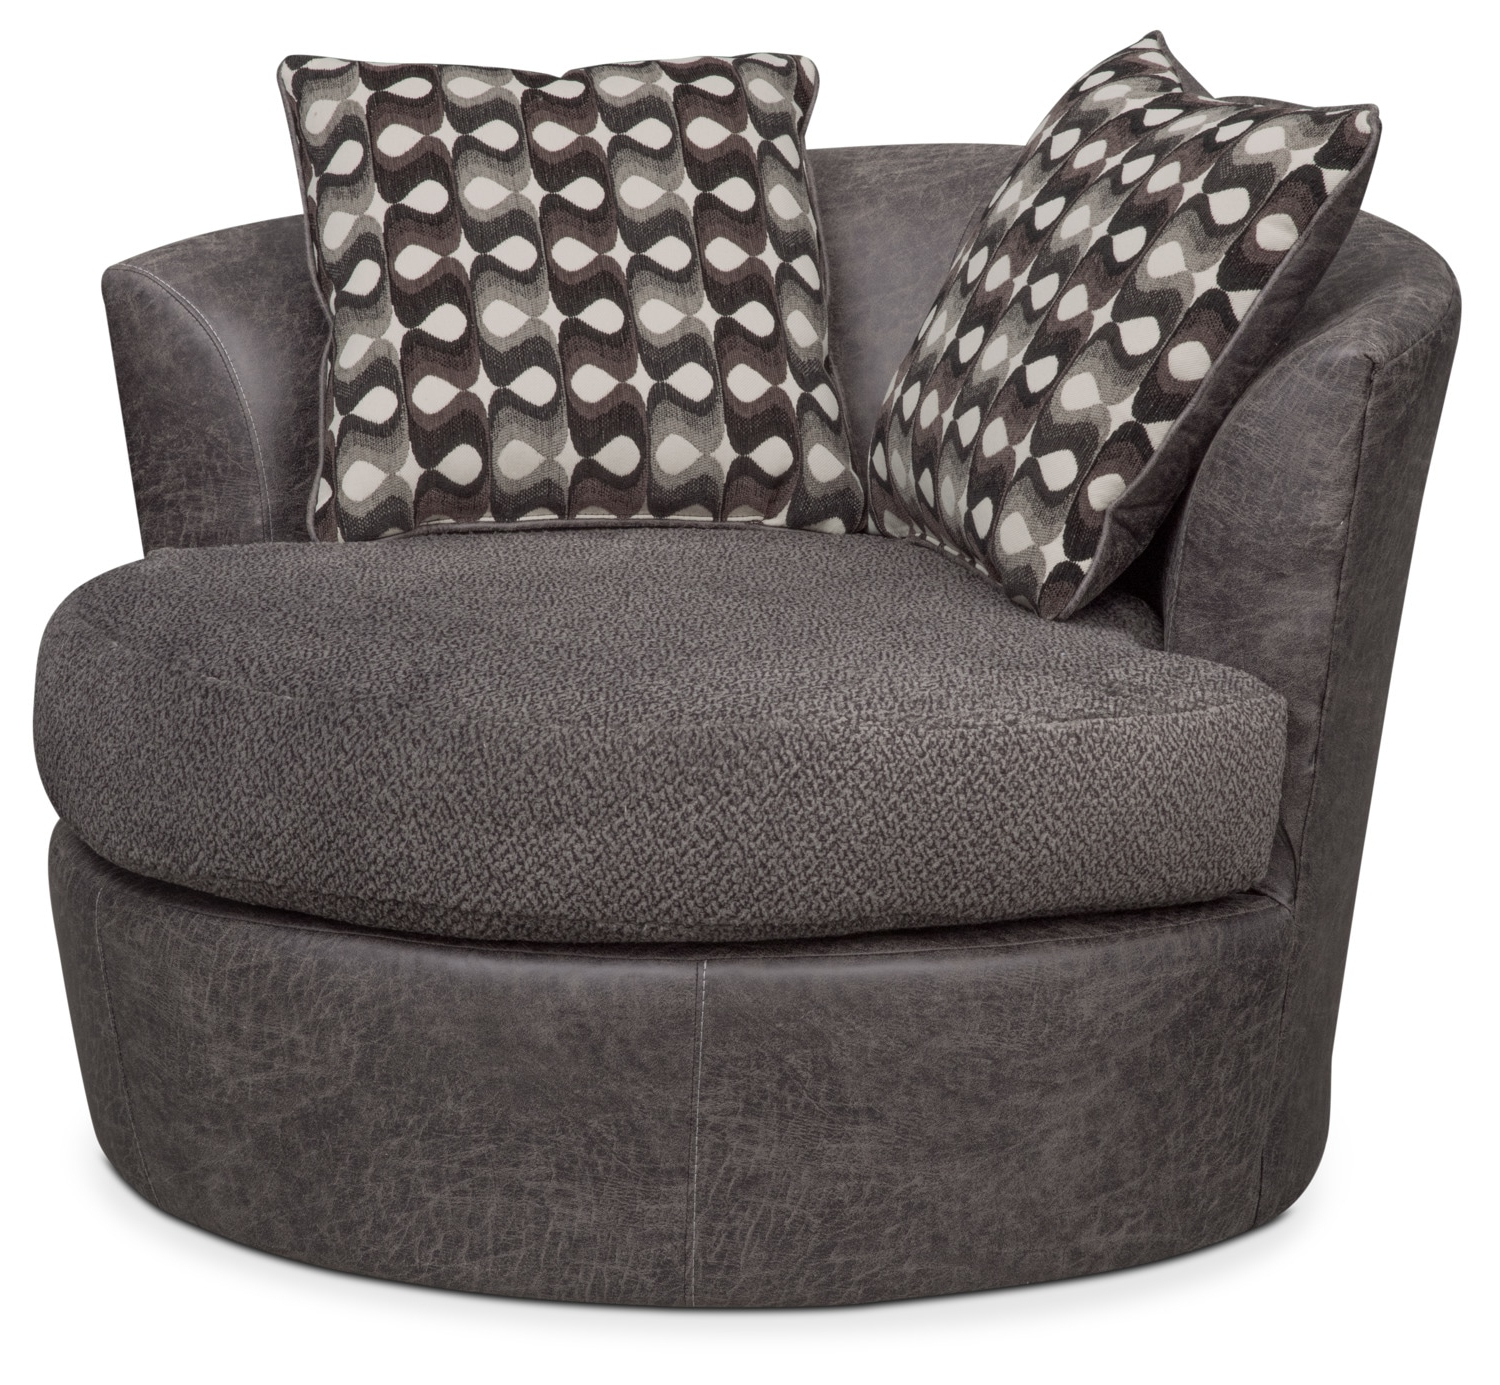 Brando Swivel Swivel Chair (View 4 of 20)